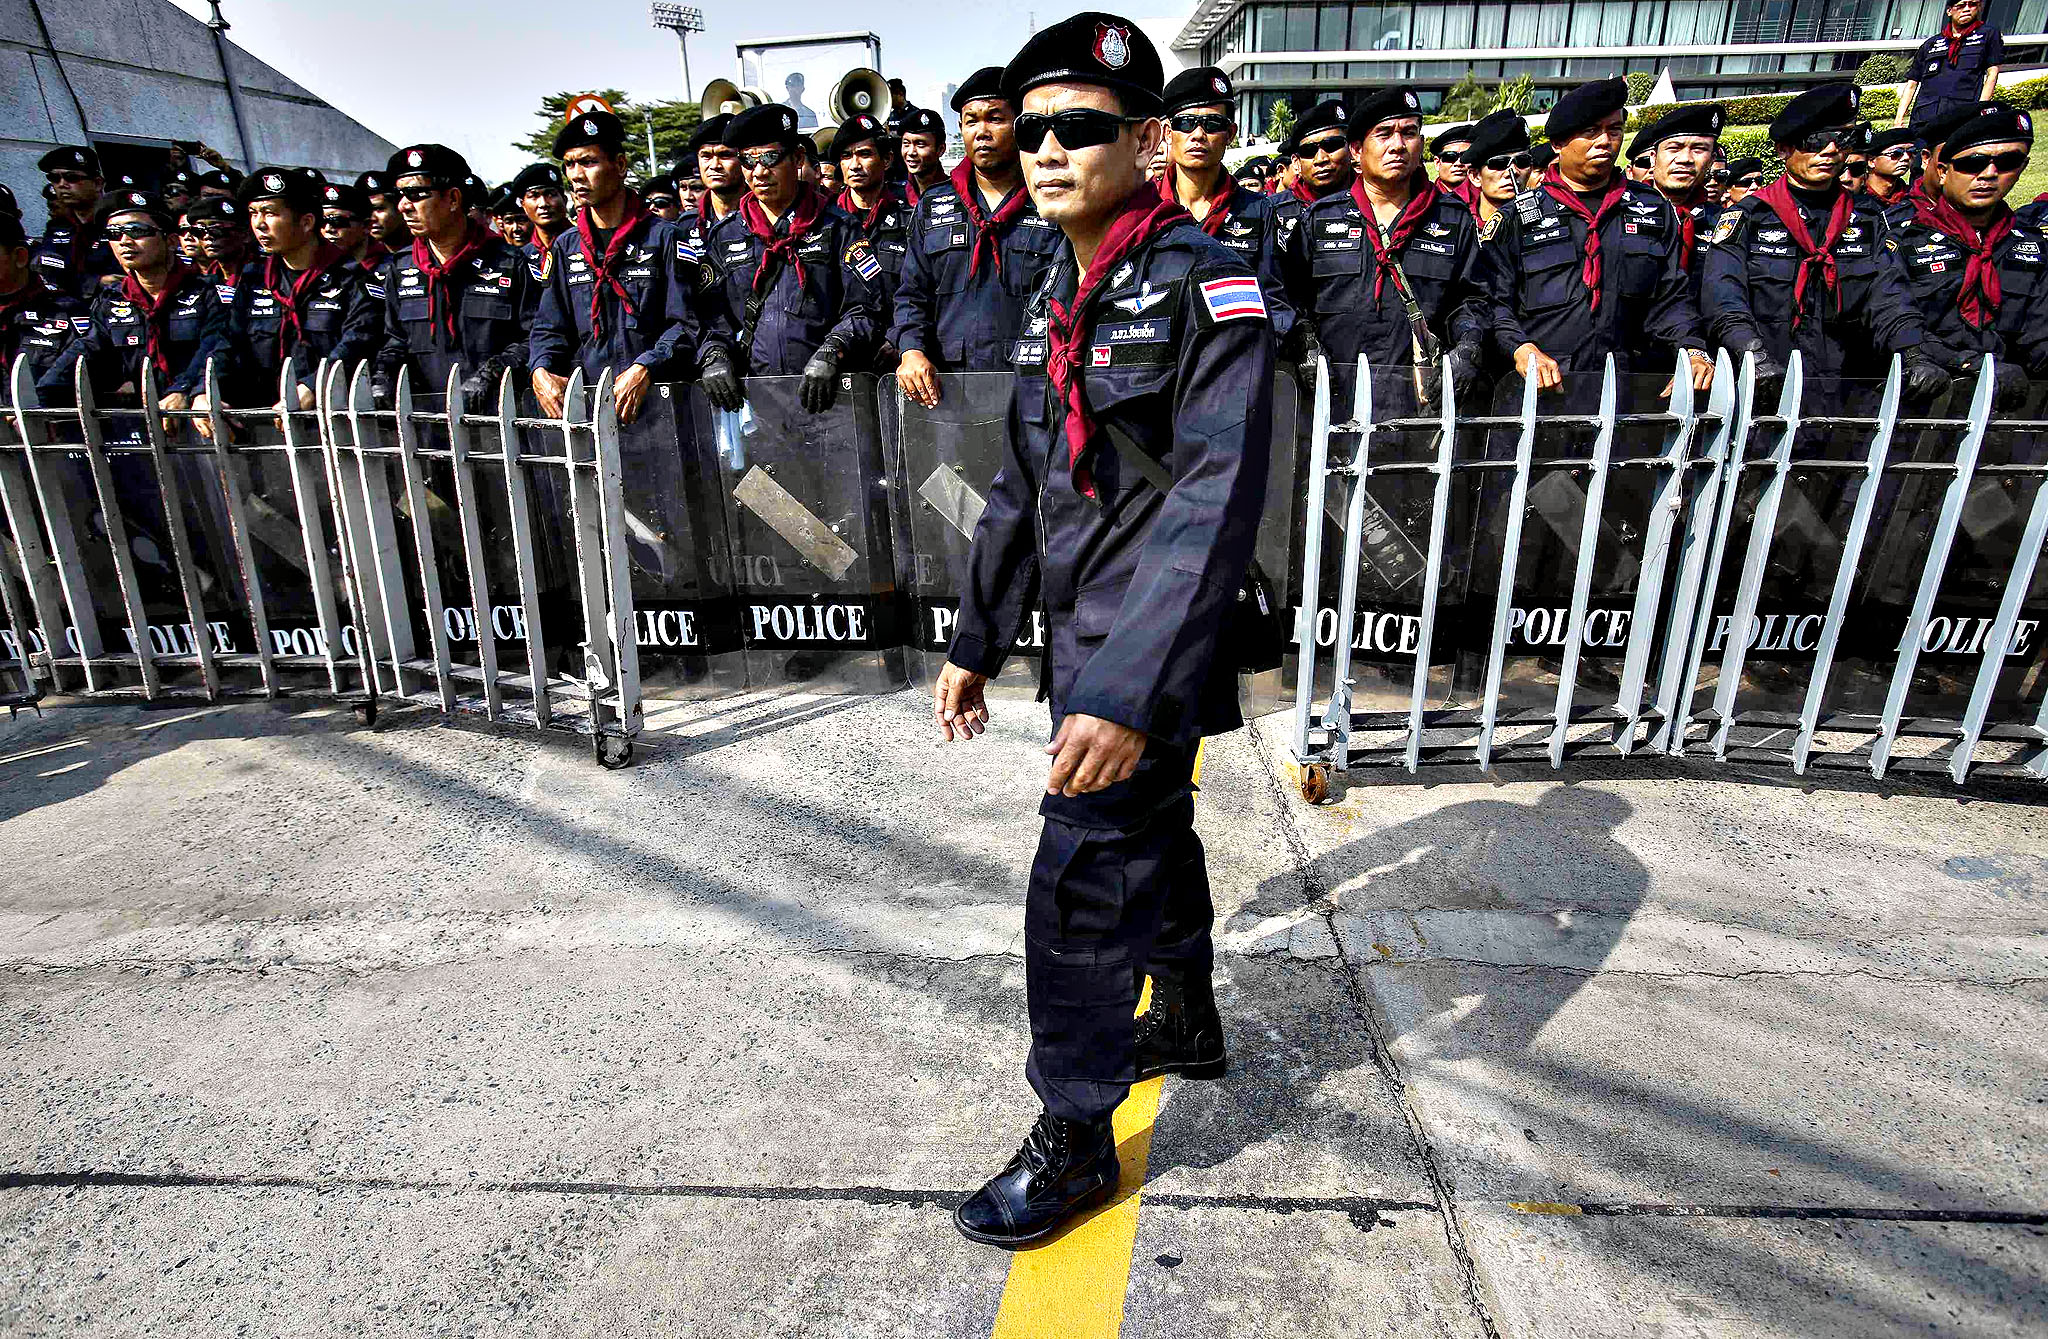 Riot policemen stand guard outside the Army Club where the Prime Minister Yingluck Shinawatra held her cabinet meeting in Bangkok December 10, 2013. Yingluck pleaded on Tuesday for anti-government demonstrators to clear the streets and support a snap election, but defiant protest leaders called for her to step down within 24 hours.